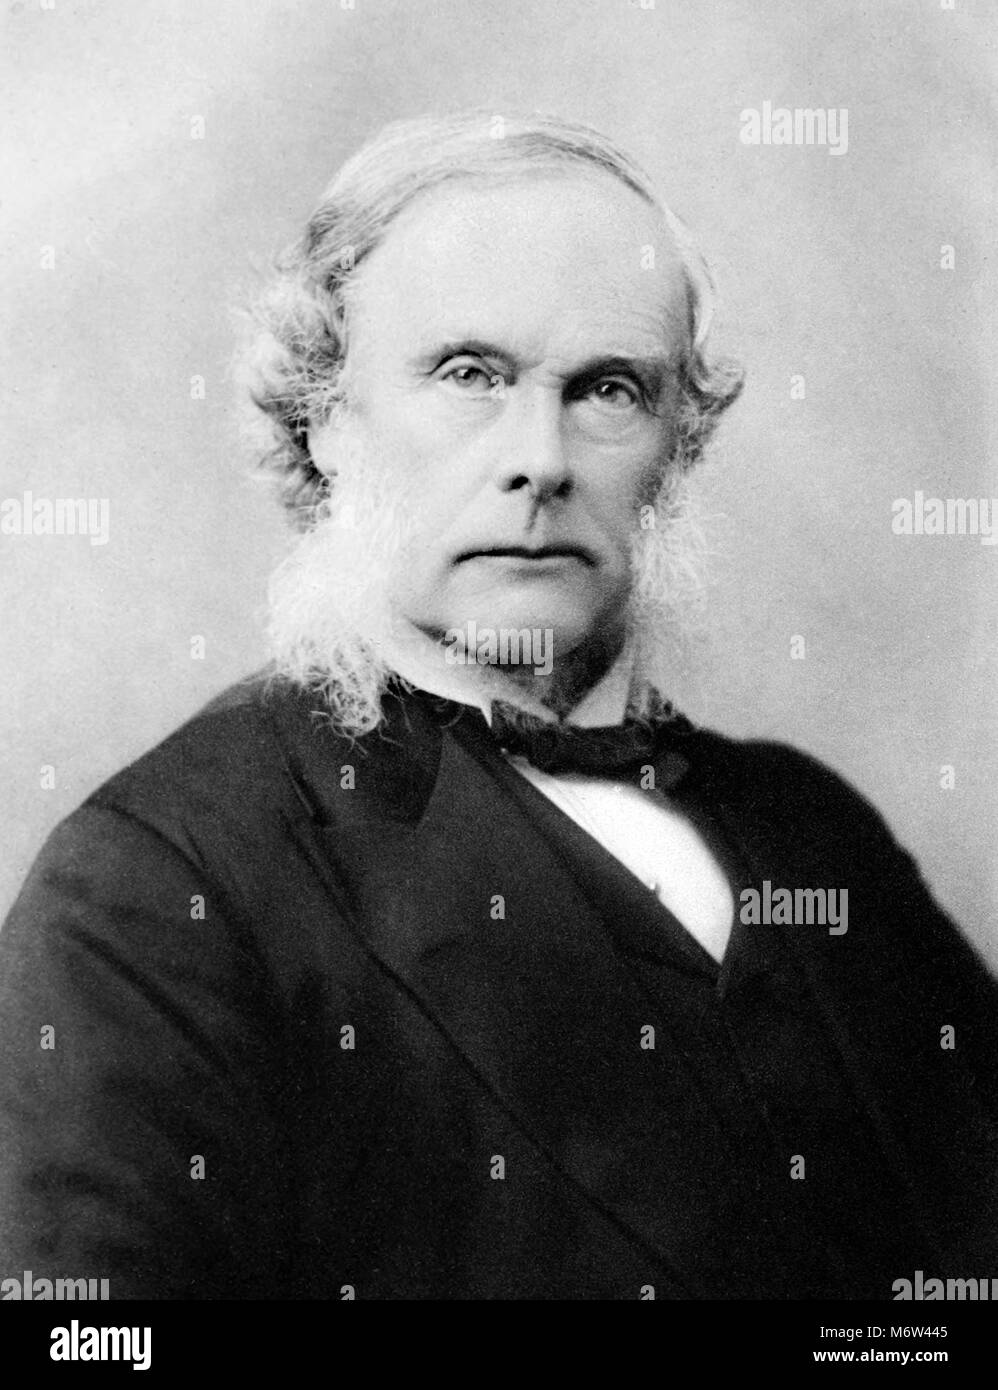 Sir Joseph Lister (1827-1912). Portrait of the British surgeon dating from 1909. - Stock Image